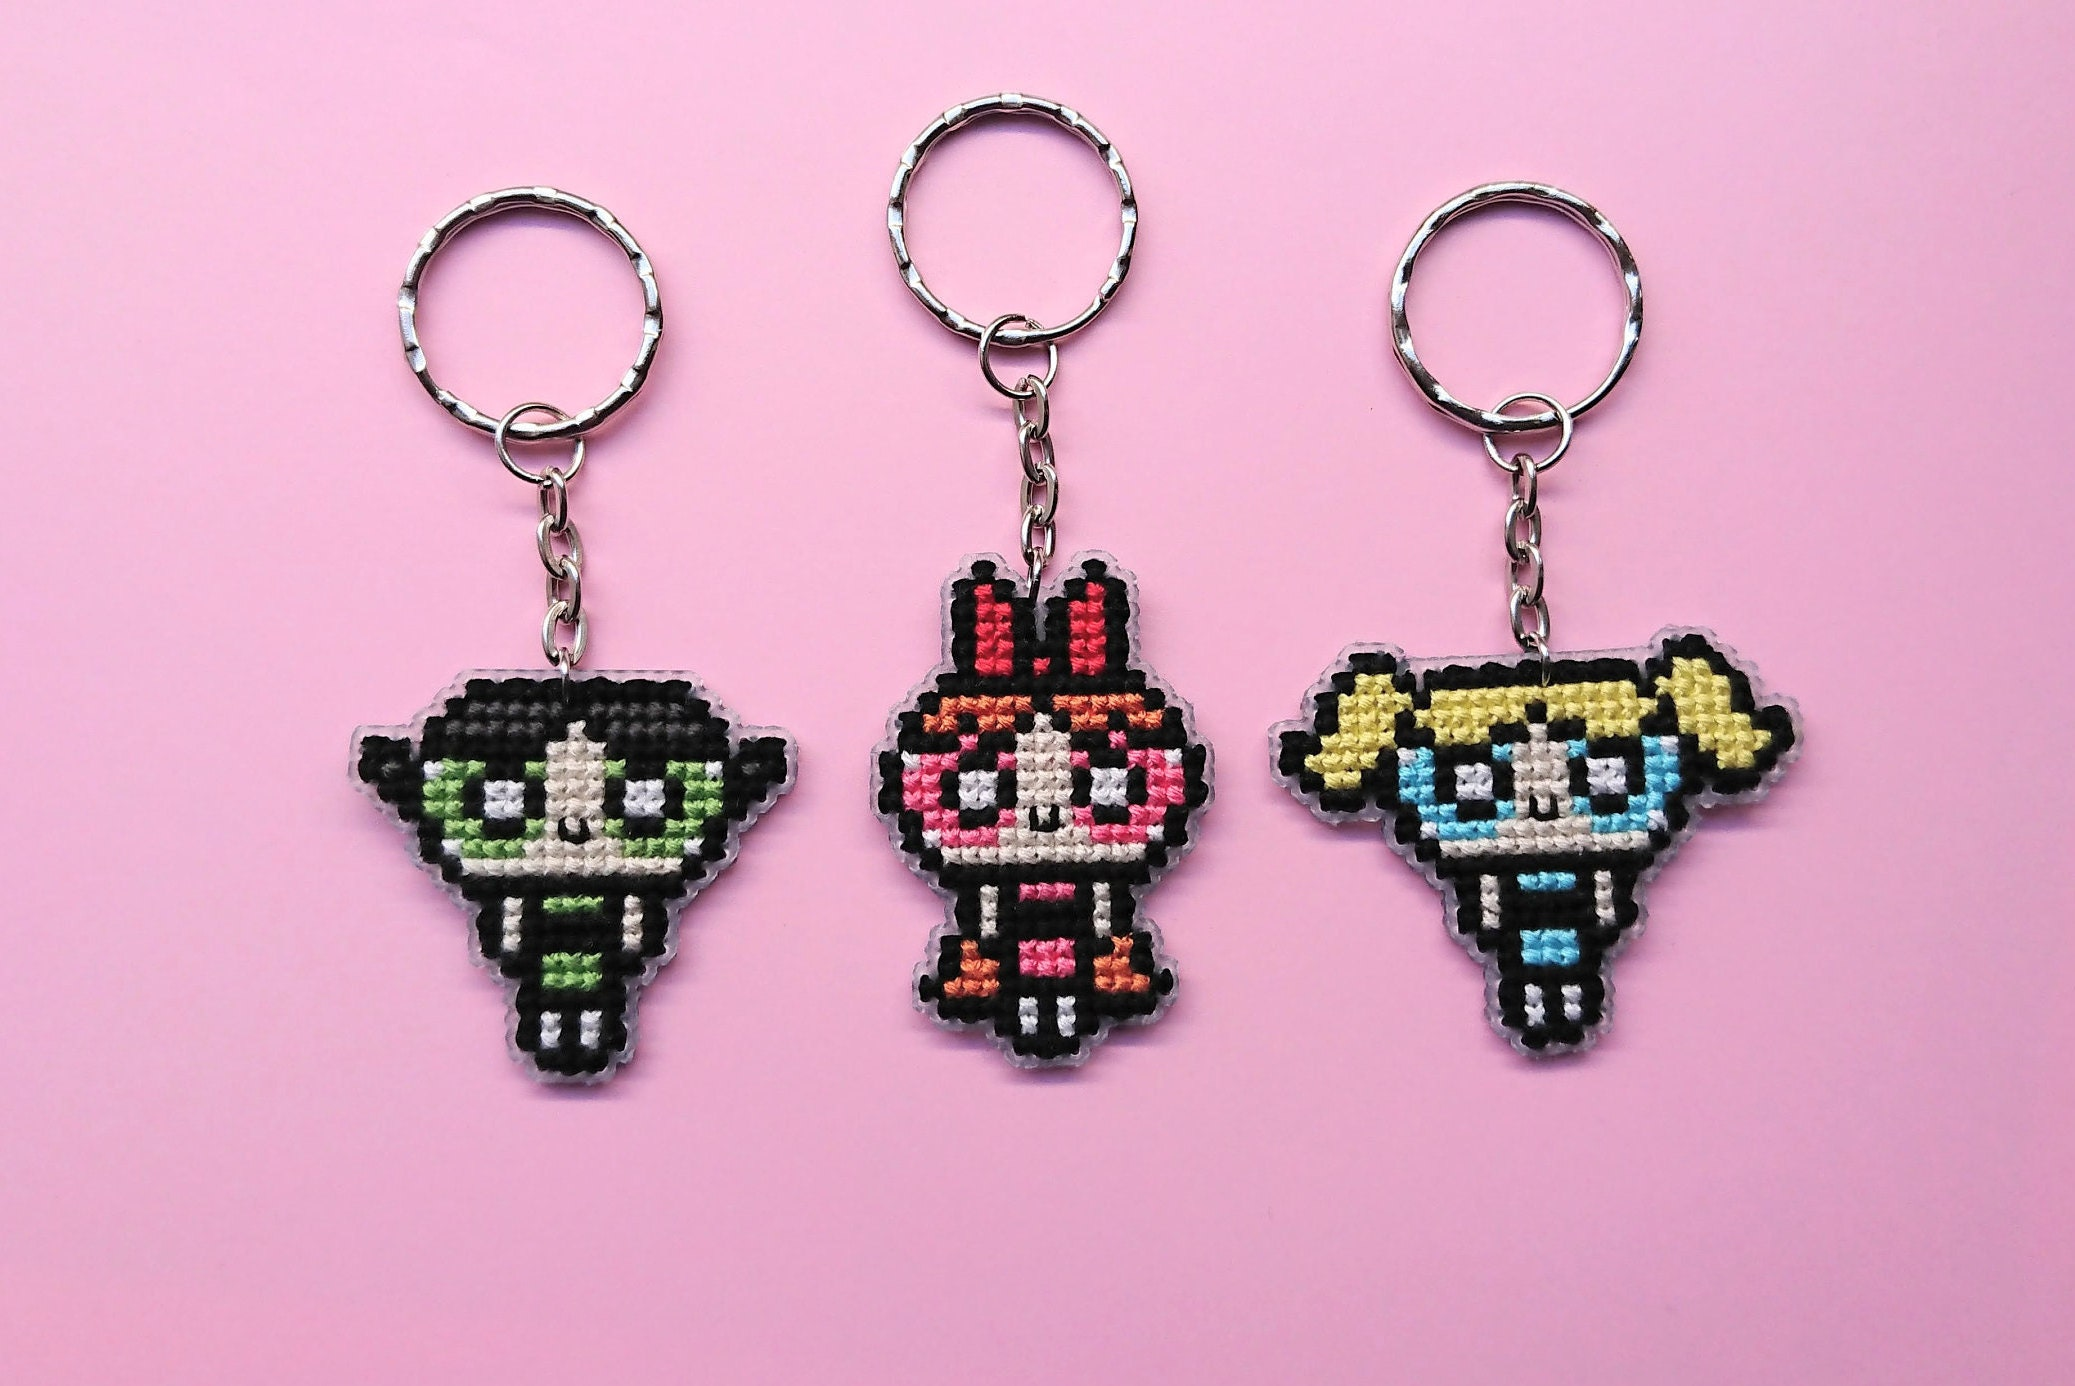 Powerpuff Girls cross stitch key chain double sided keychains | Etsy